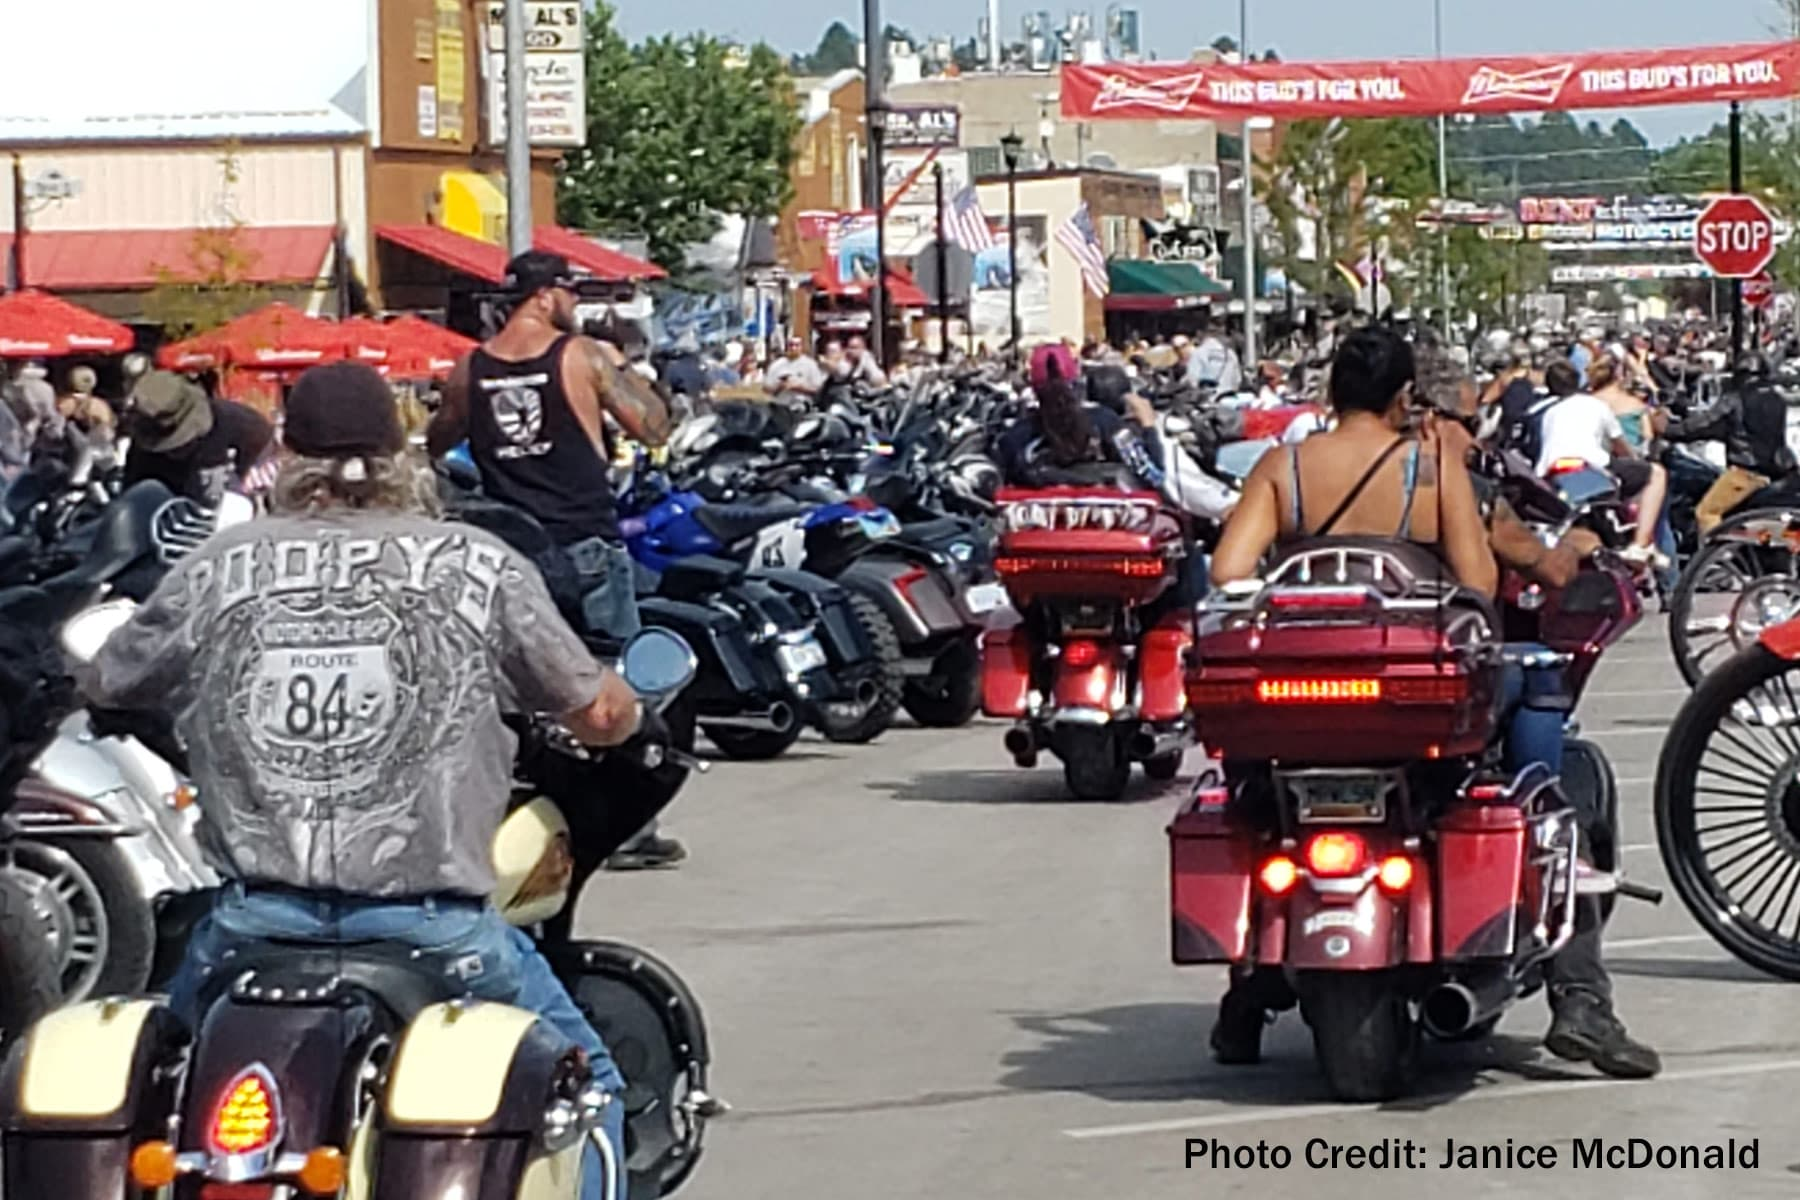 A COVID Super Spreader in 2020, Sturgis Motorcycle Is On Again